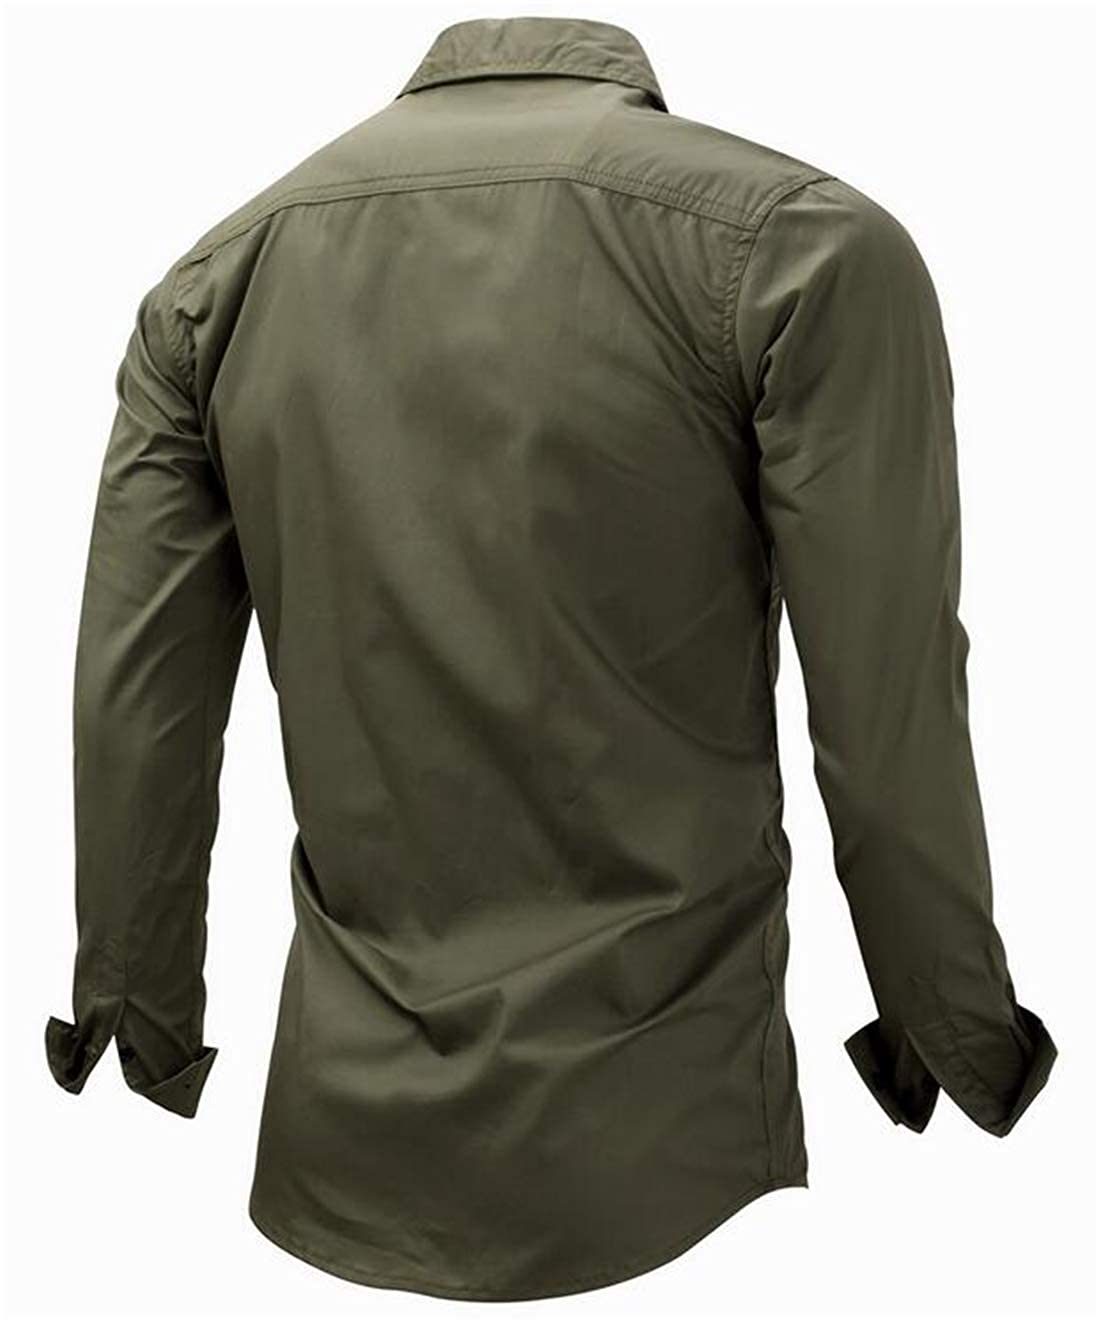 Gnao Mens Casual Zip-Up Outdoor Solid Button Down Long Sleeve Military Army Shirt